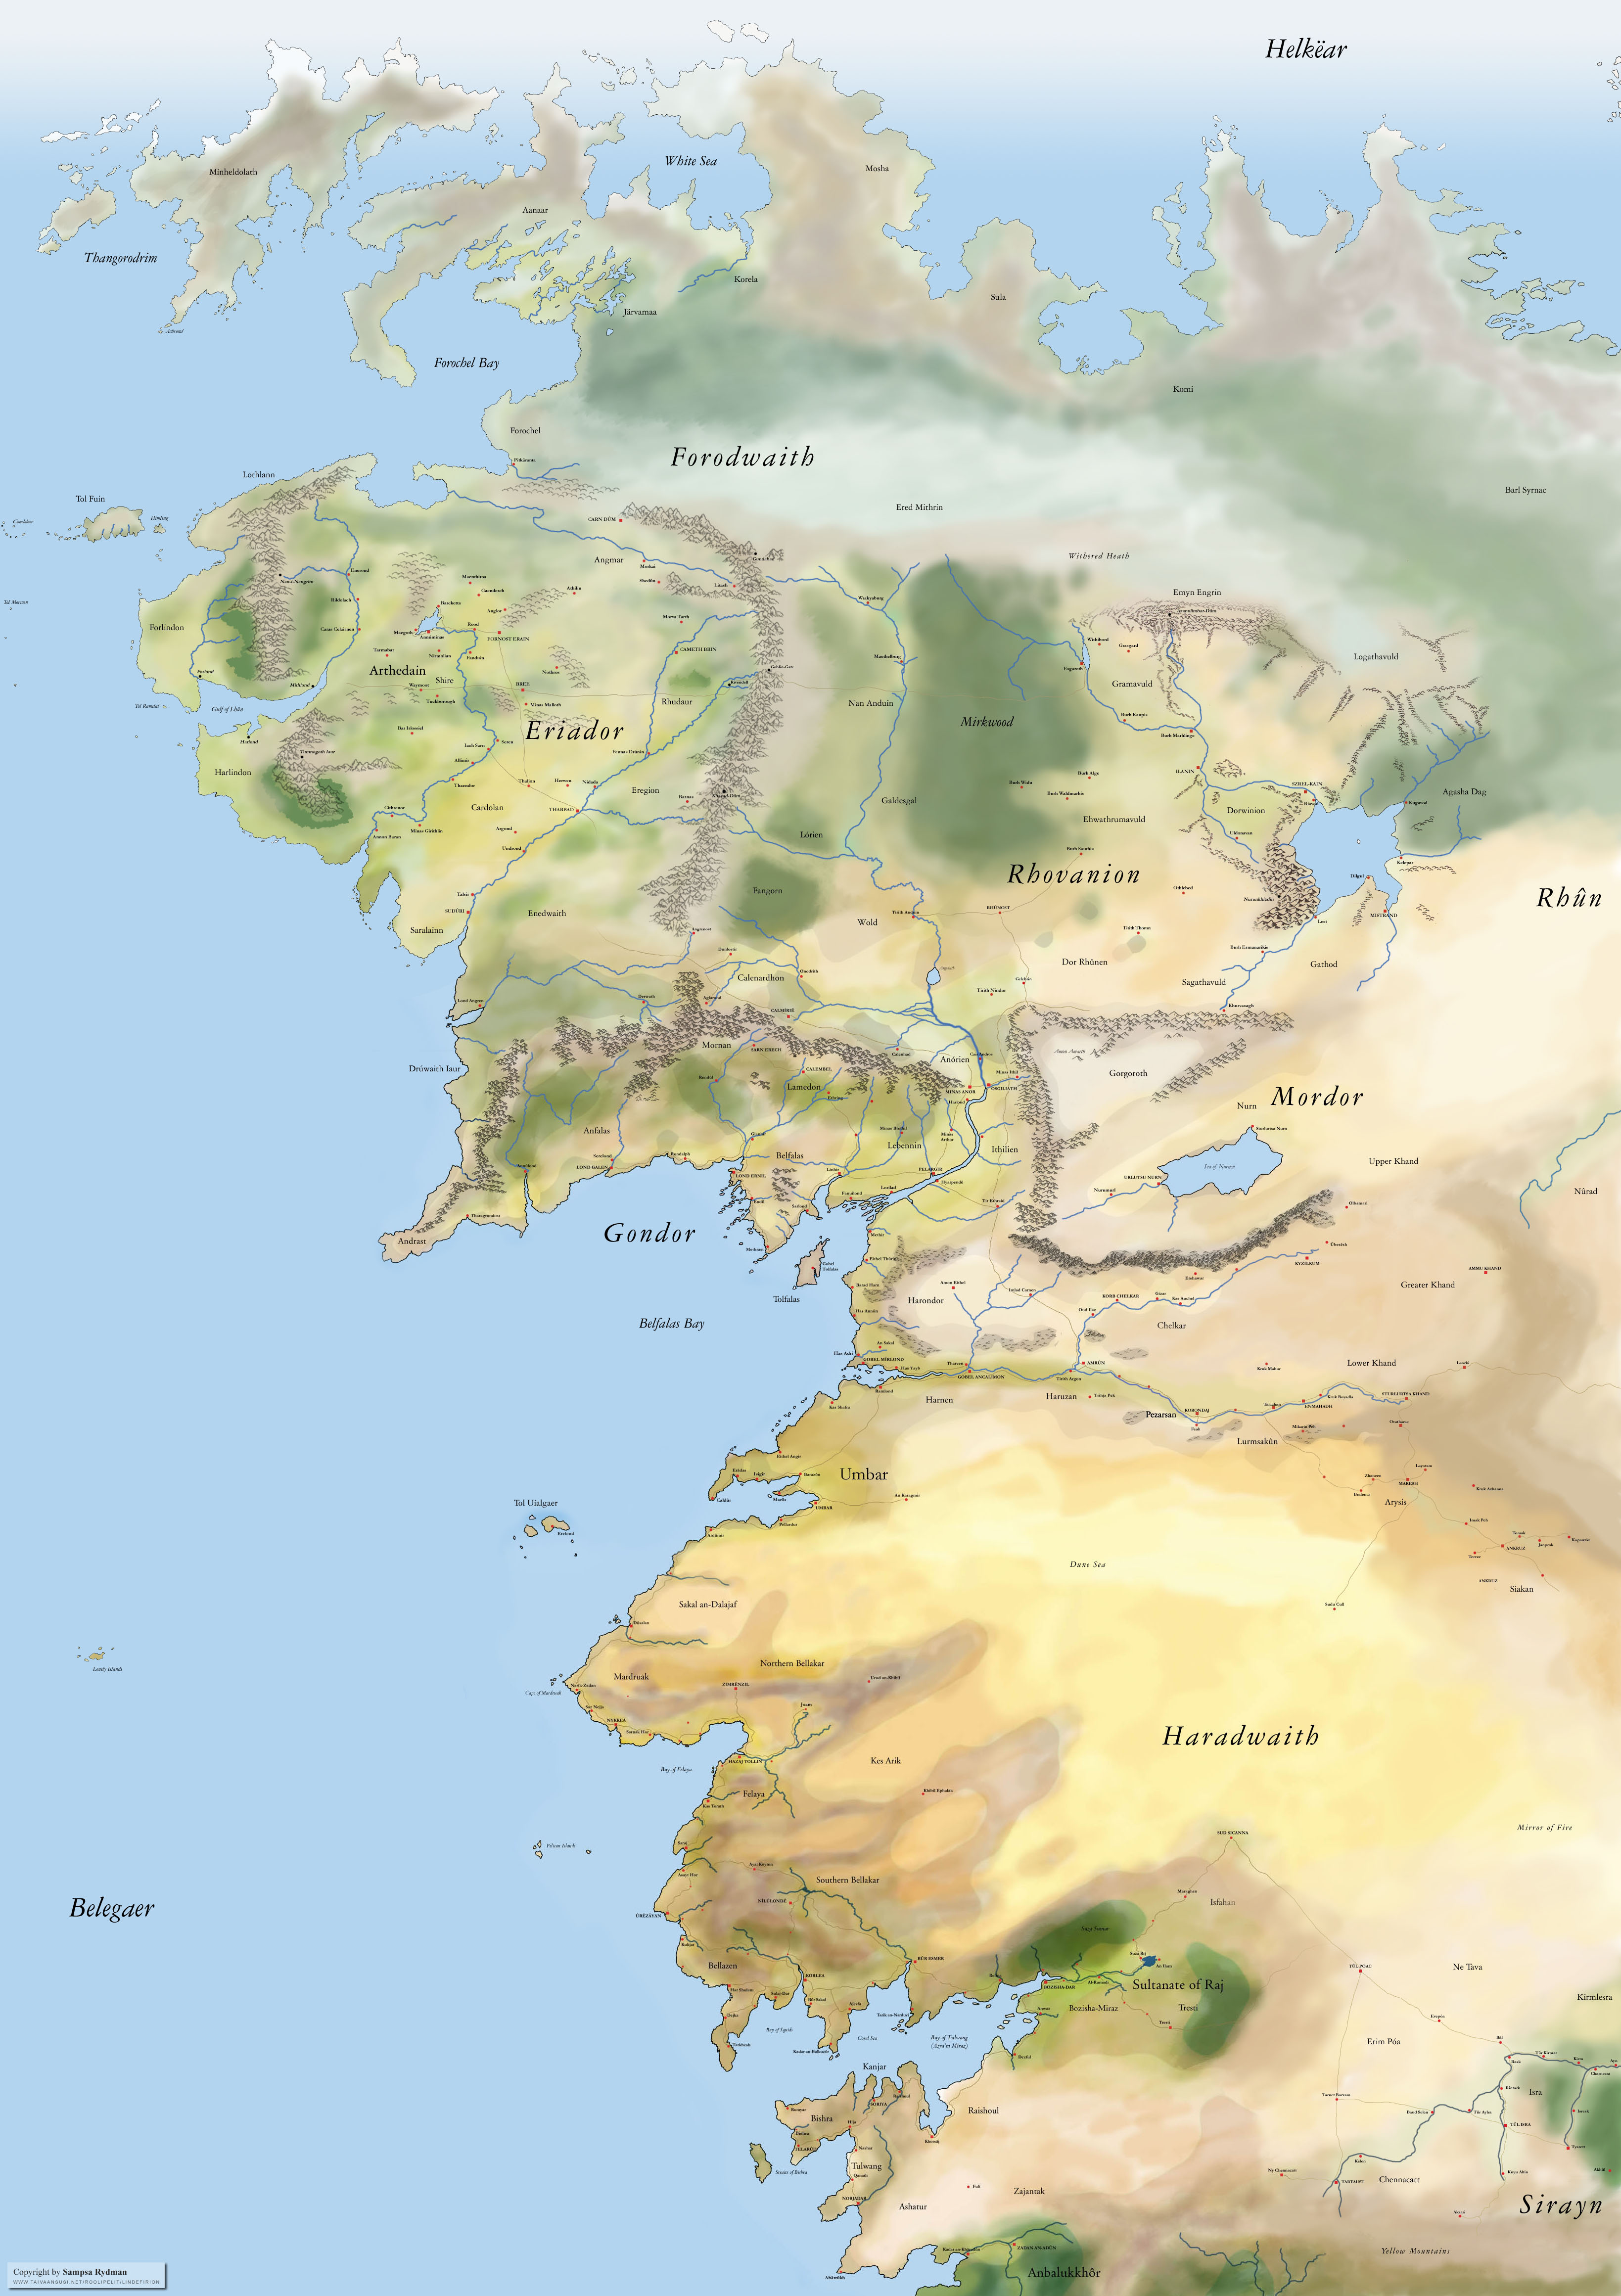 Lind firion Collection of Maps by Sampsa Rydman – Map of Middle Earth